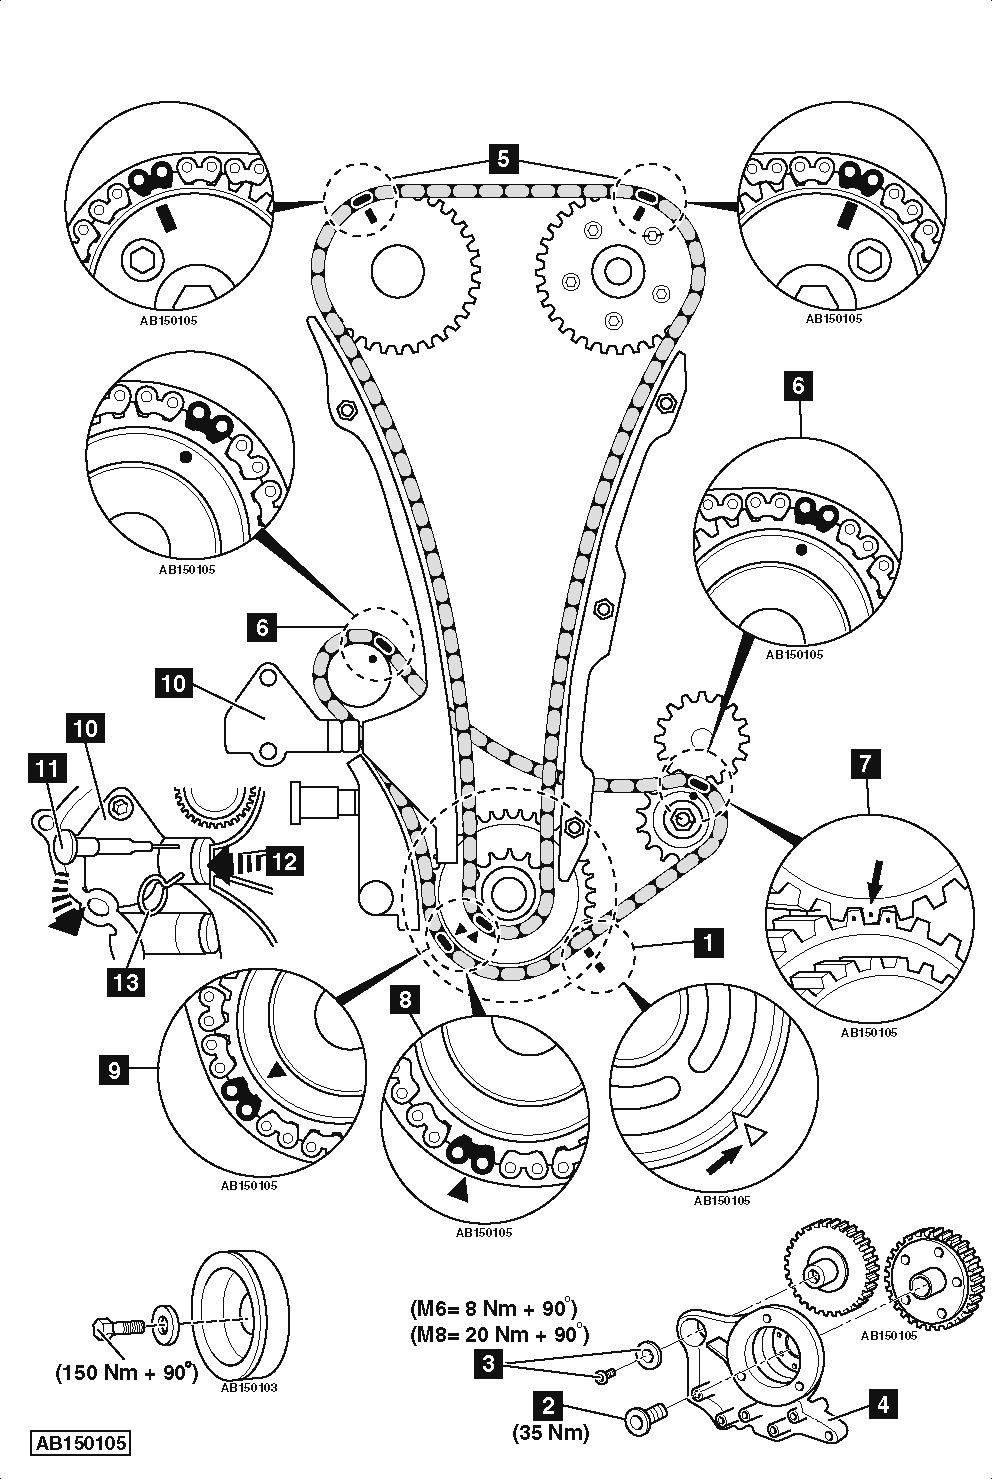 Saab 9 5 Parts Diagram further 2001 Land Rover Discovery Vacuum Diagram Wiring Diagrams additionally Brake Booster Vacuum Hose W Check Valve 5334529 together with 2002 further 36rzf 1998 Chevy Malibu Coolant Fans Not Working. on saab 9 3 engine